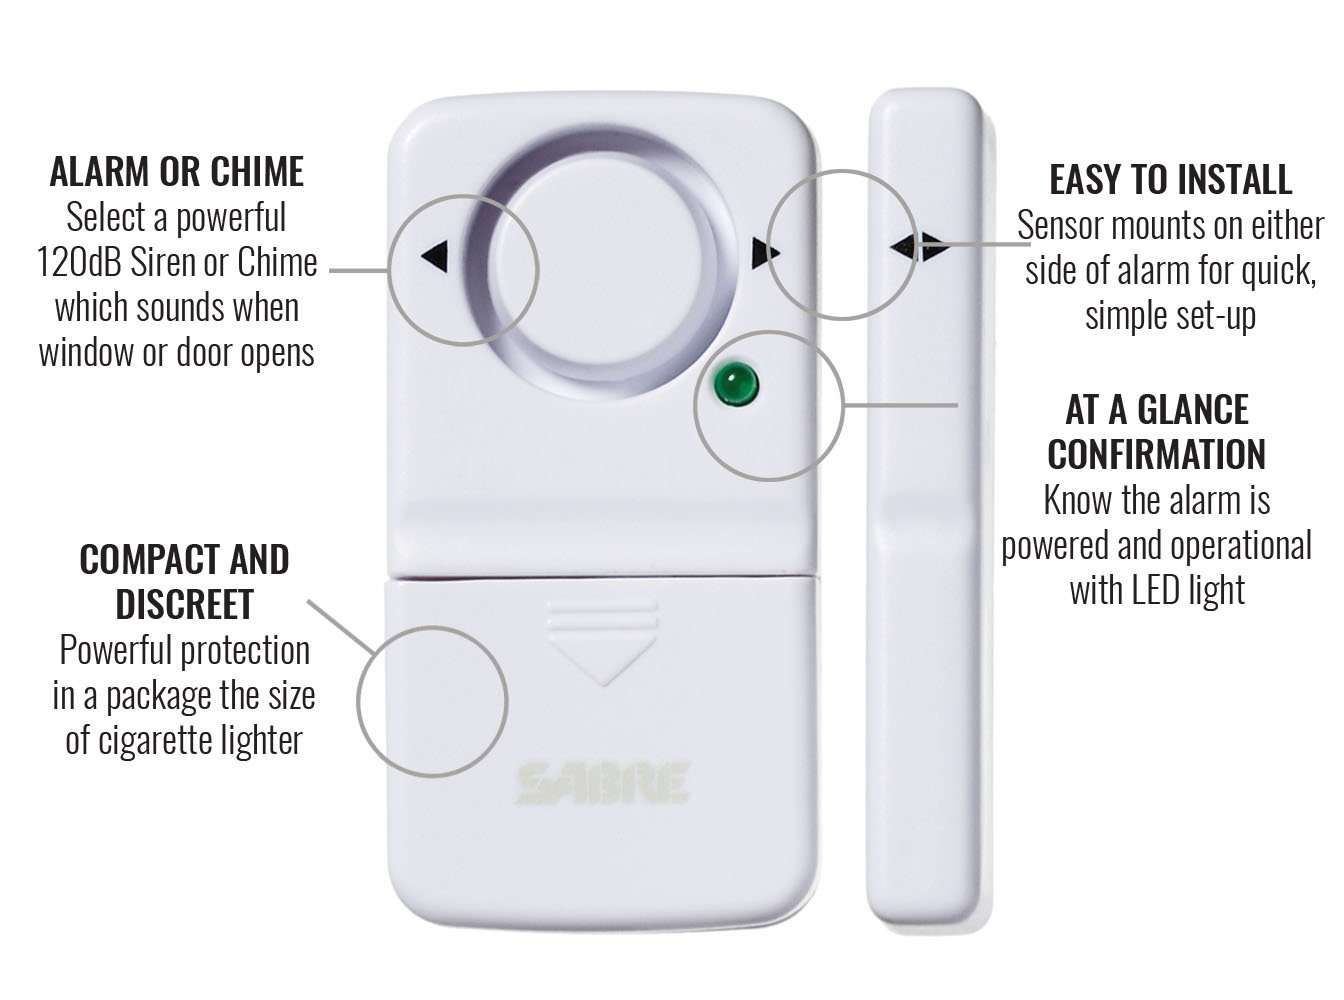 Sabre Wireless Home Security Door Window Burglar Alarm Wiring Diagram Of O General Ac With Loud 120 Db Siren Diy Easy To Install Improvement